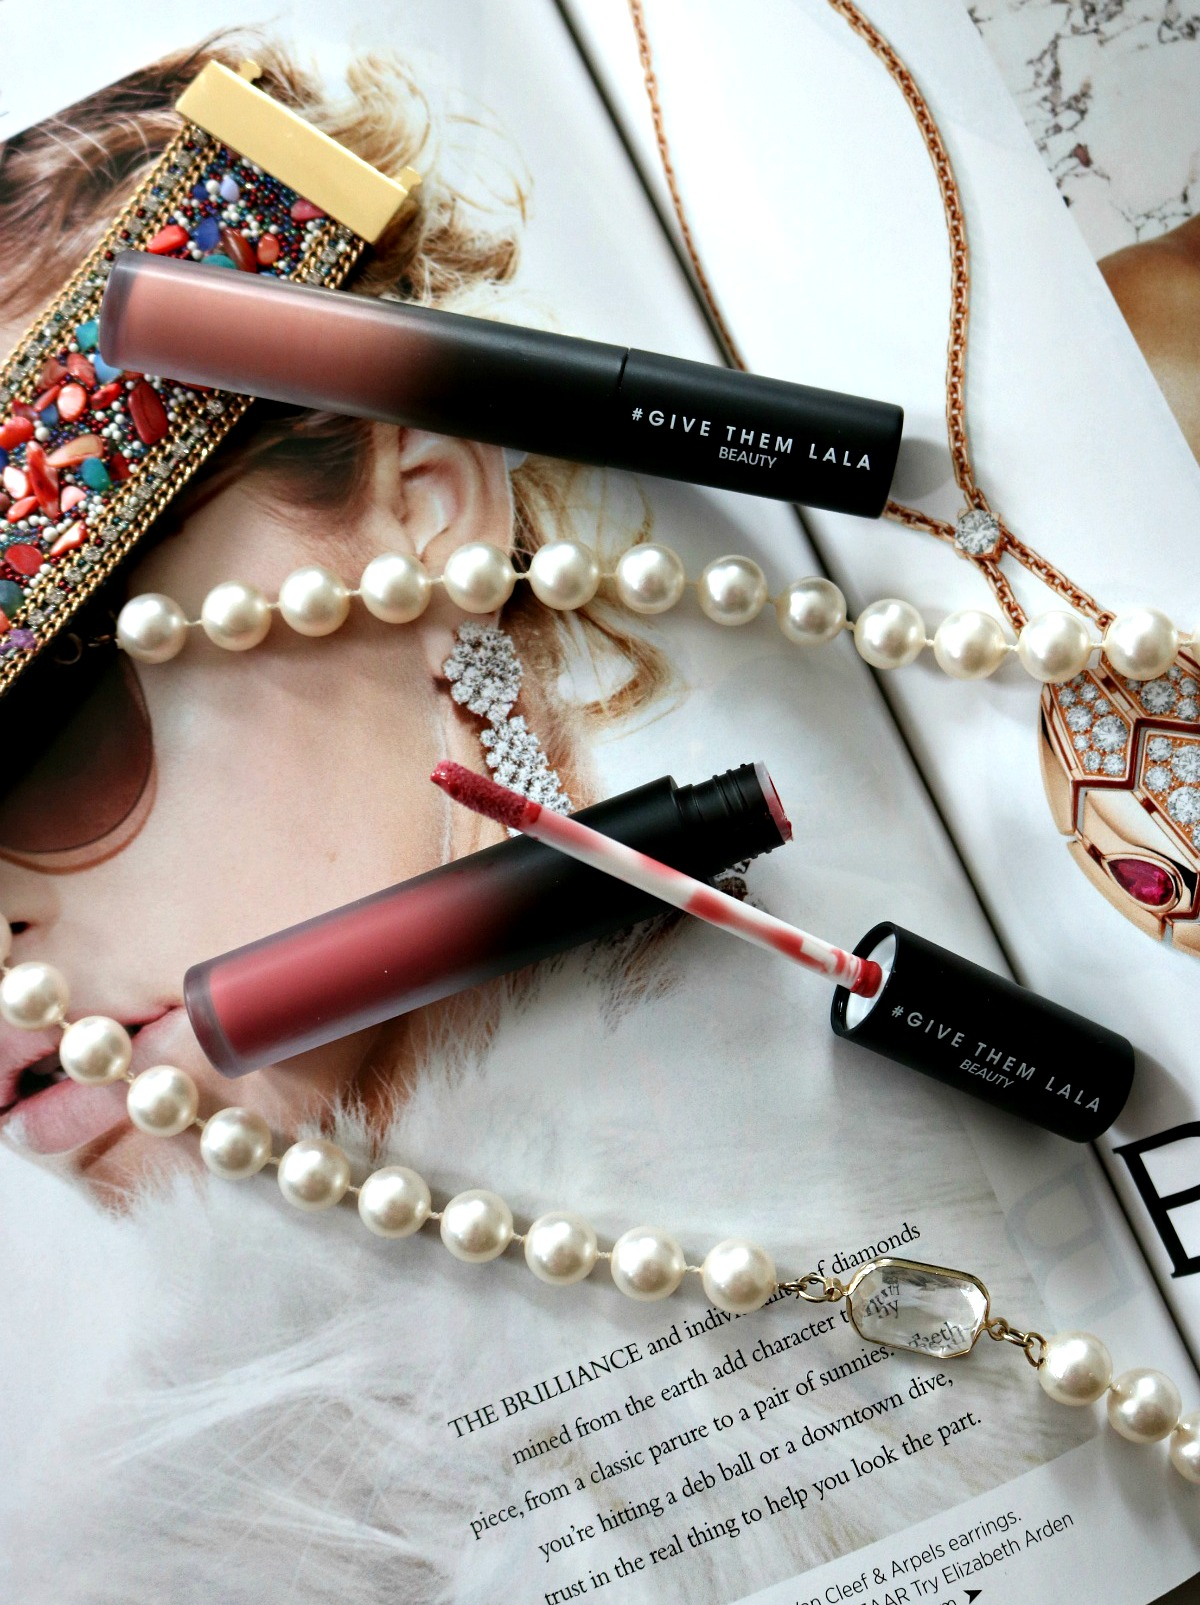 Give Them Lala Beauty Lip Gloss Review I DreaminLace.com #CrueltyFree #LipGloss #CrueltyFreeBeauty